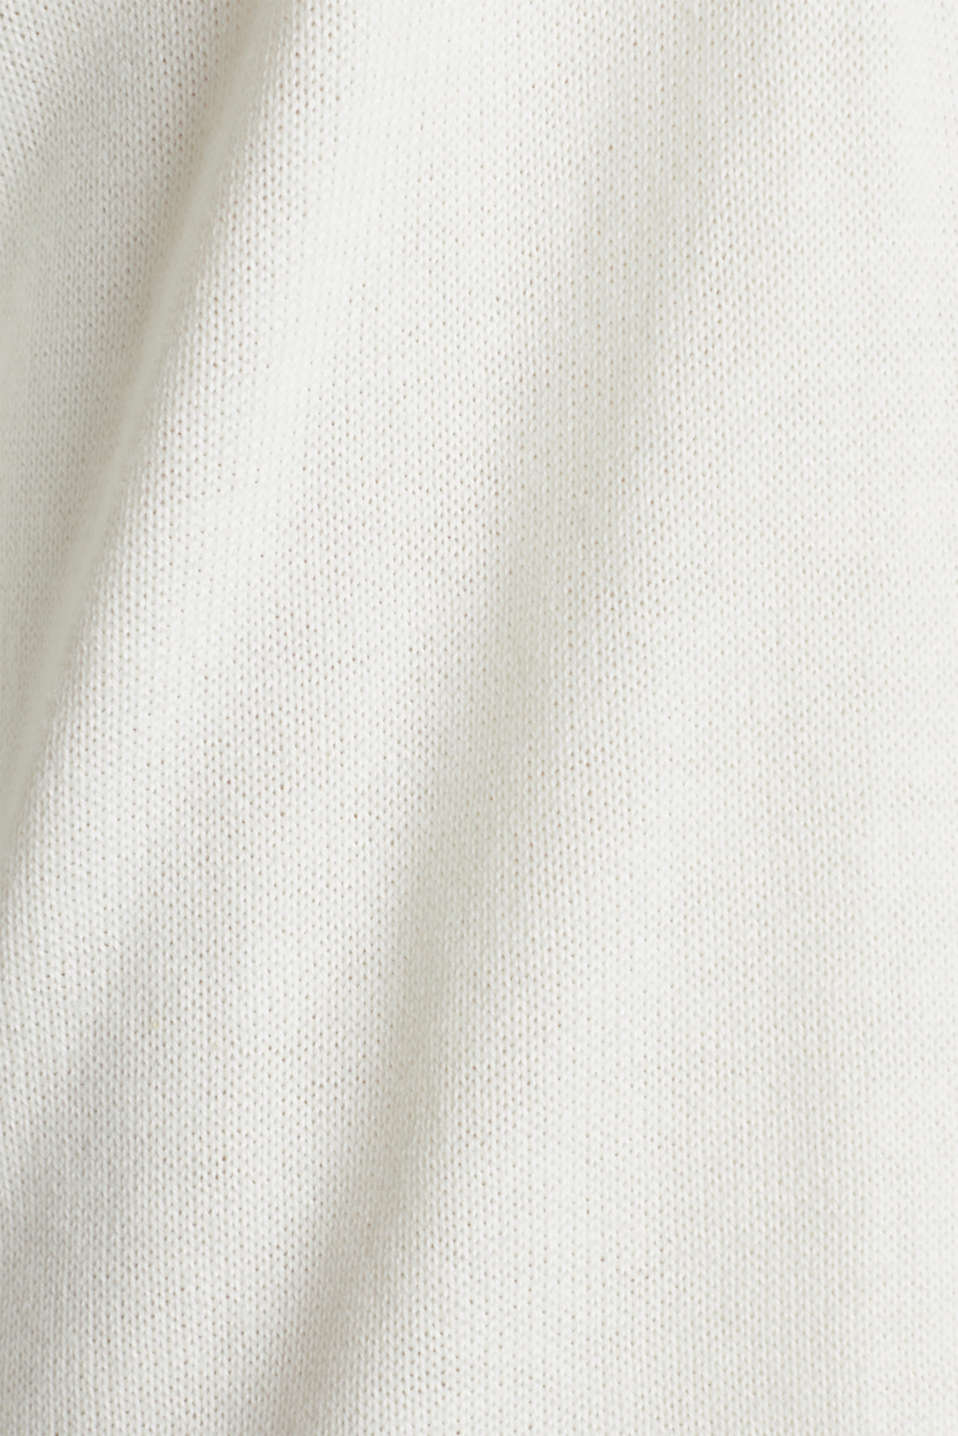 Cardigan with open-work pattern details, OFF WHITE, detail image number 4